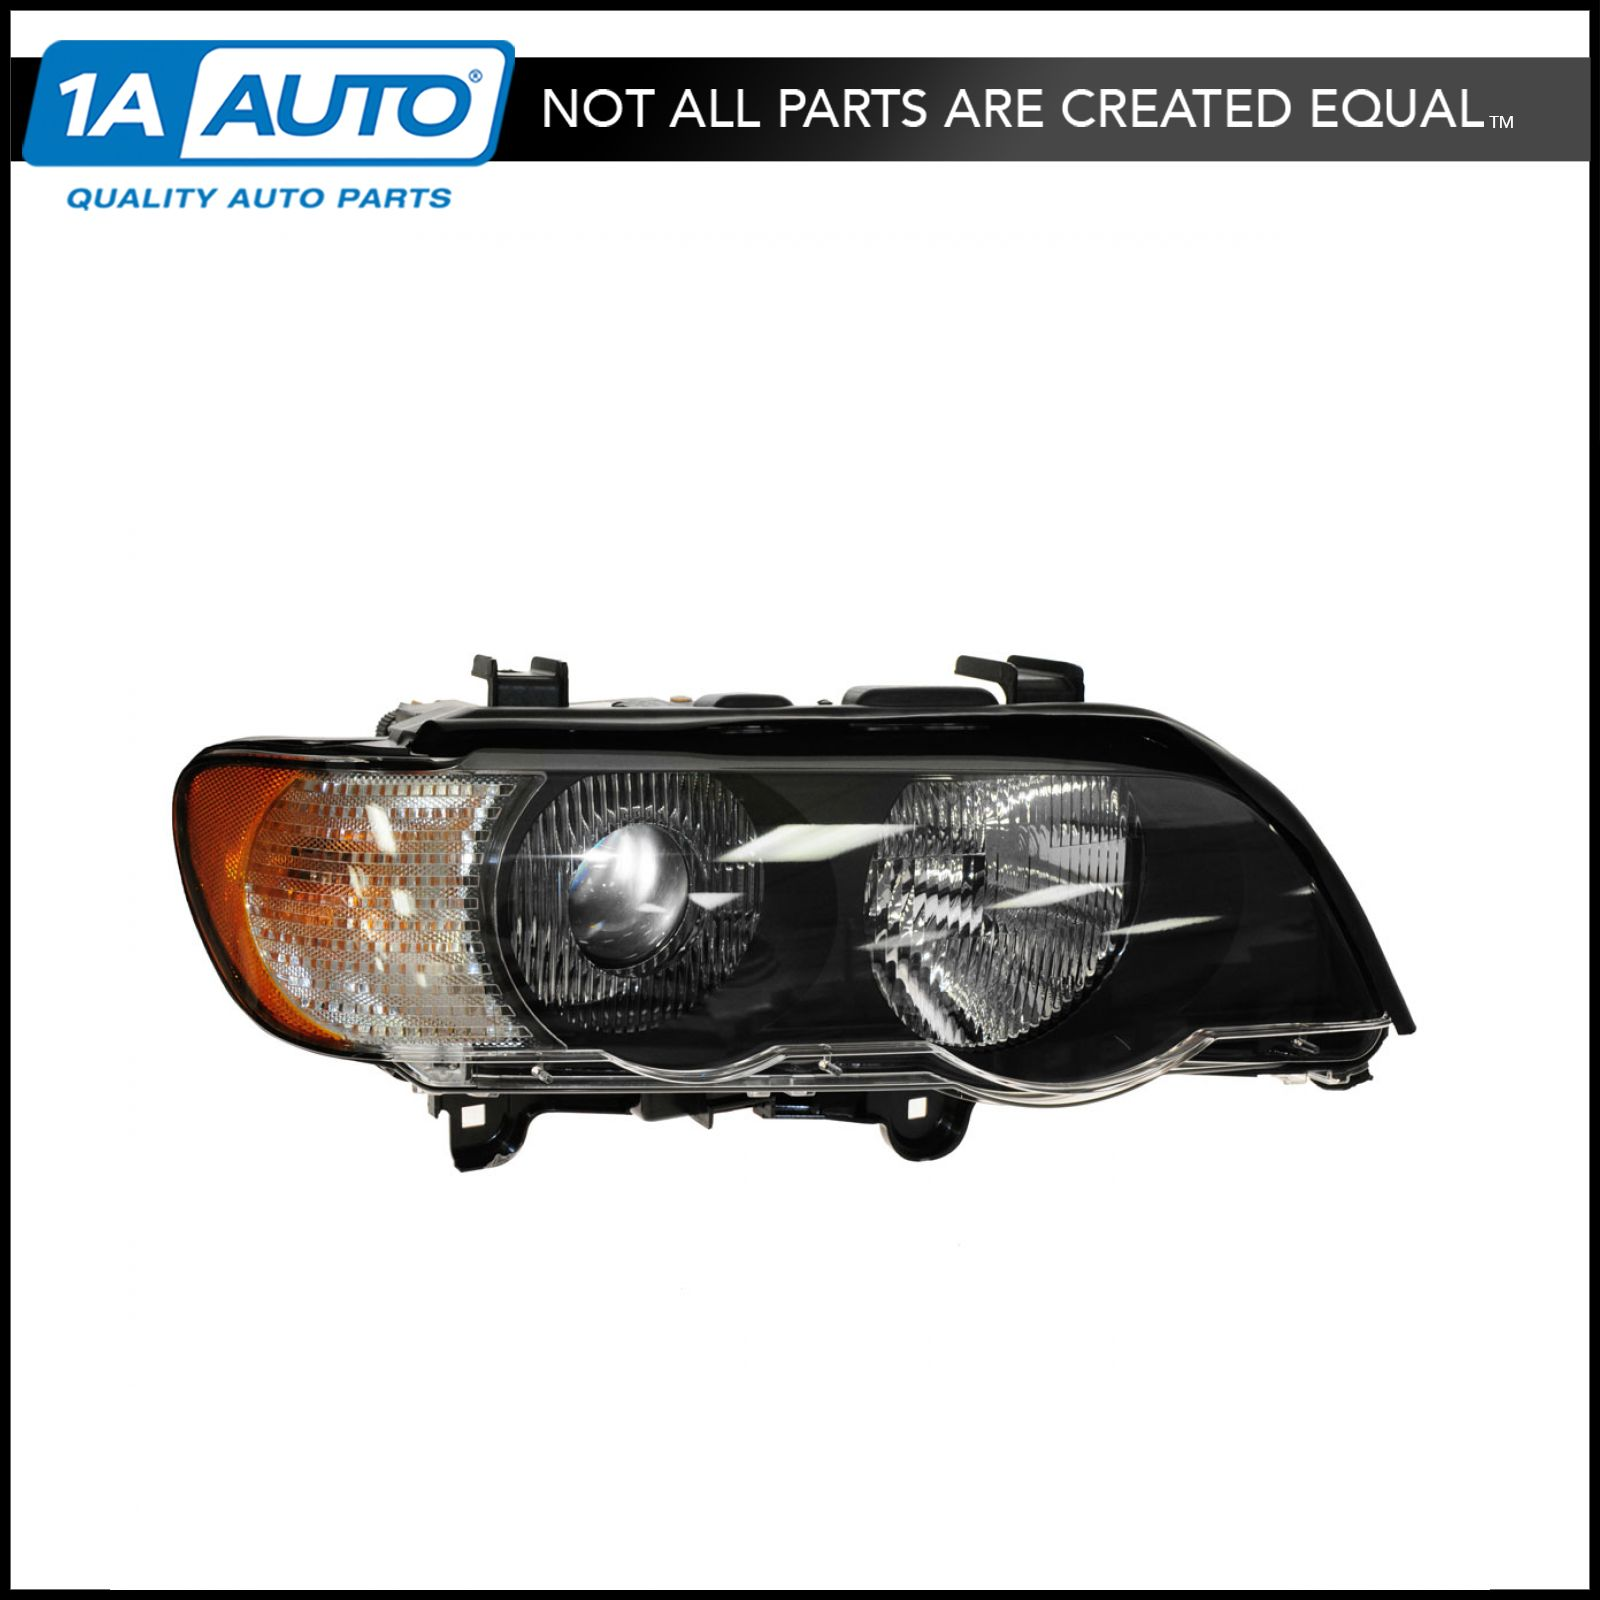 Depo 344-1123R-ASH2C BMW X5 Passenger Side Replacement Headlight Assembly 02-00-344-1123R-ASH2C